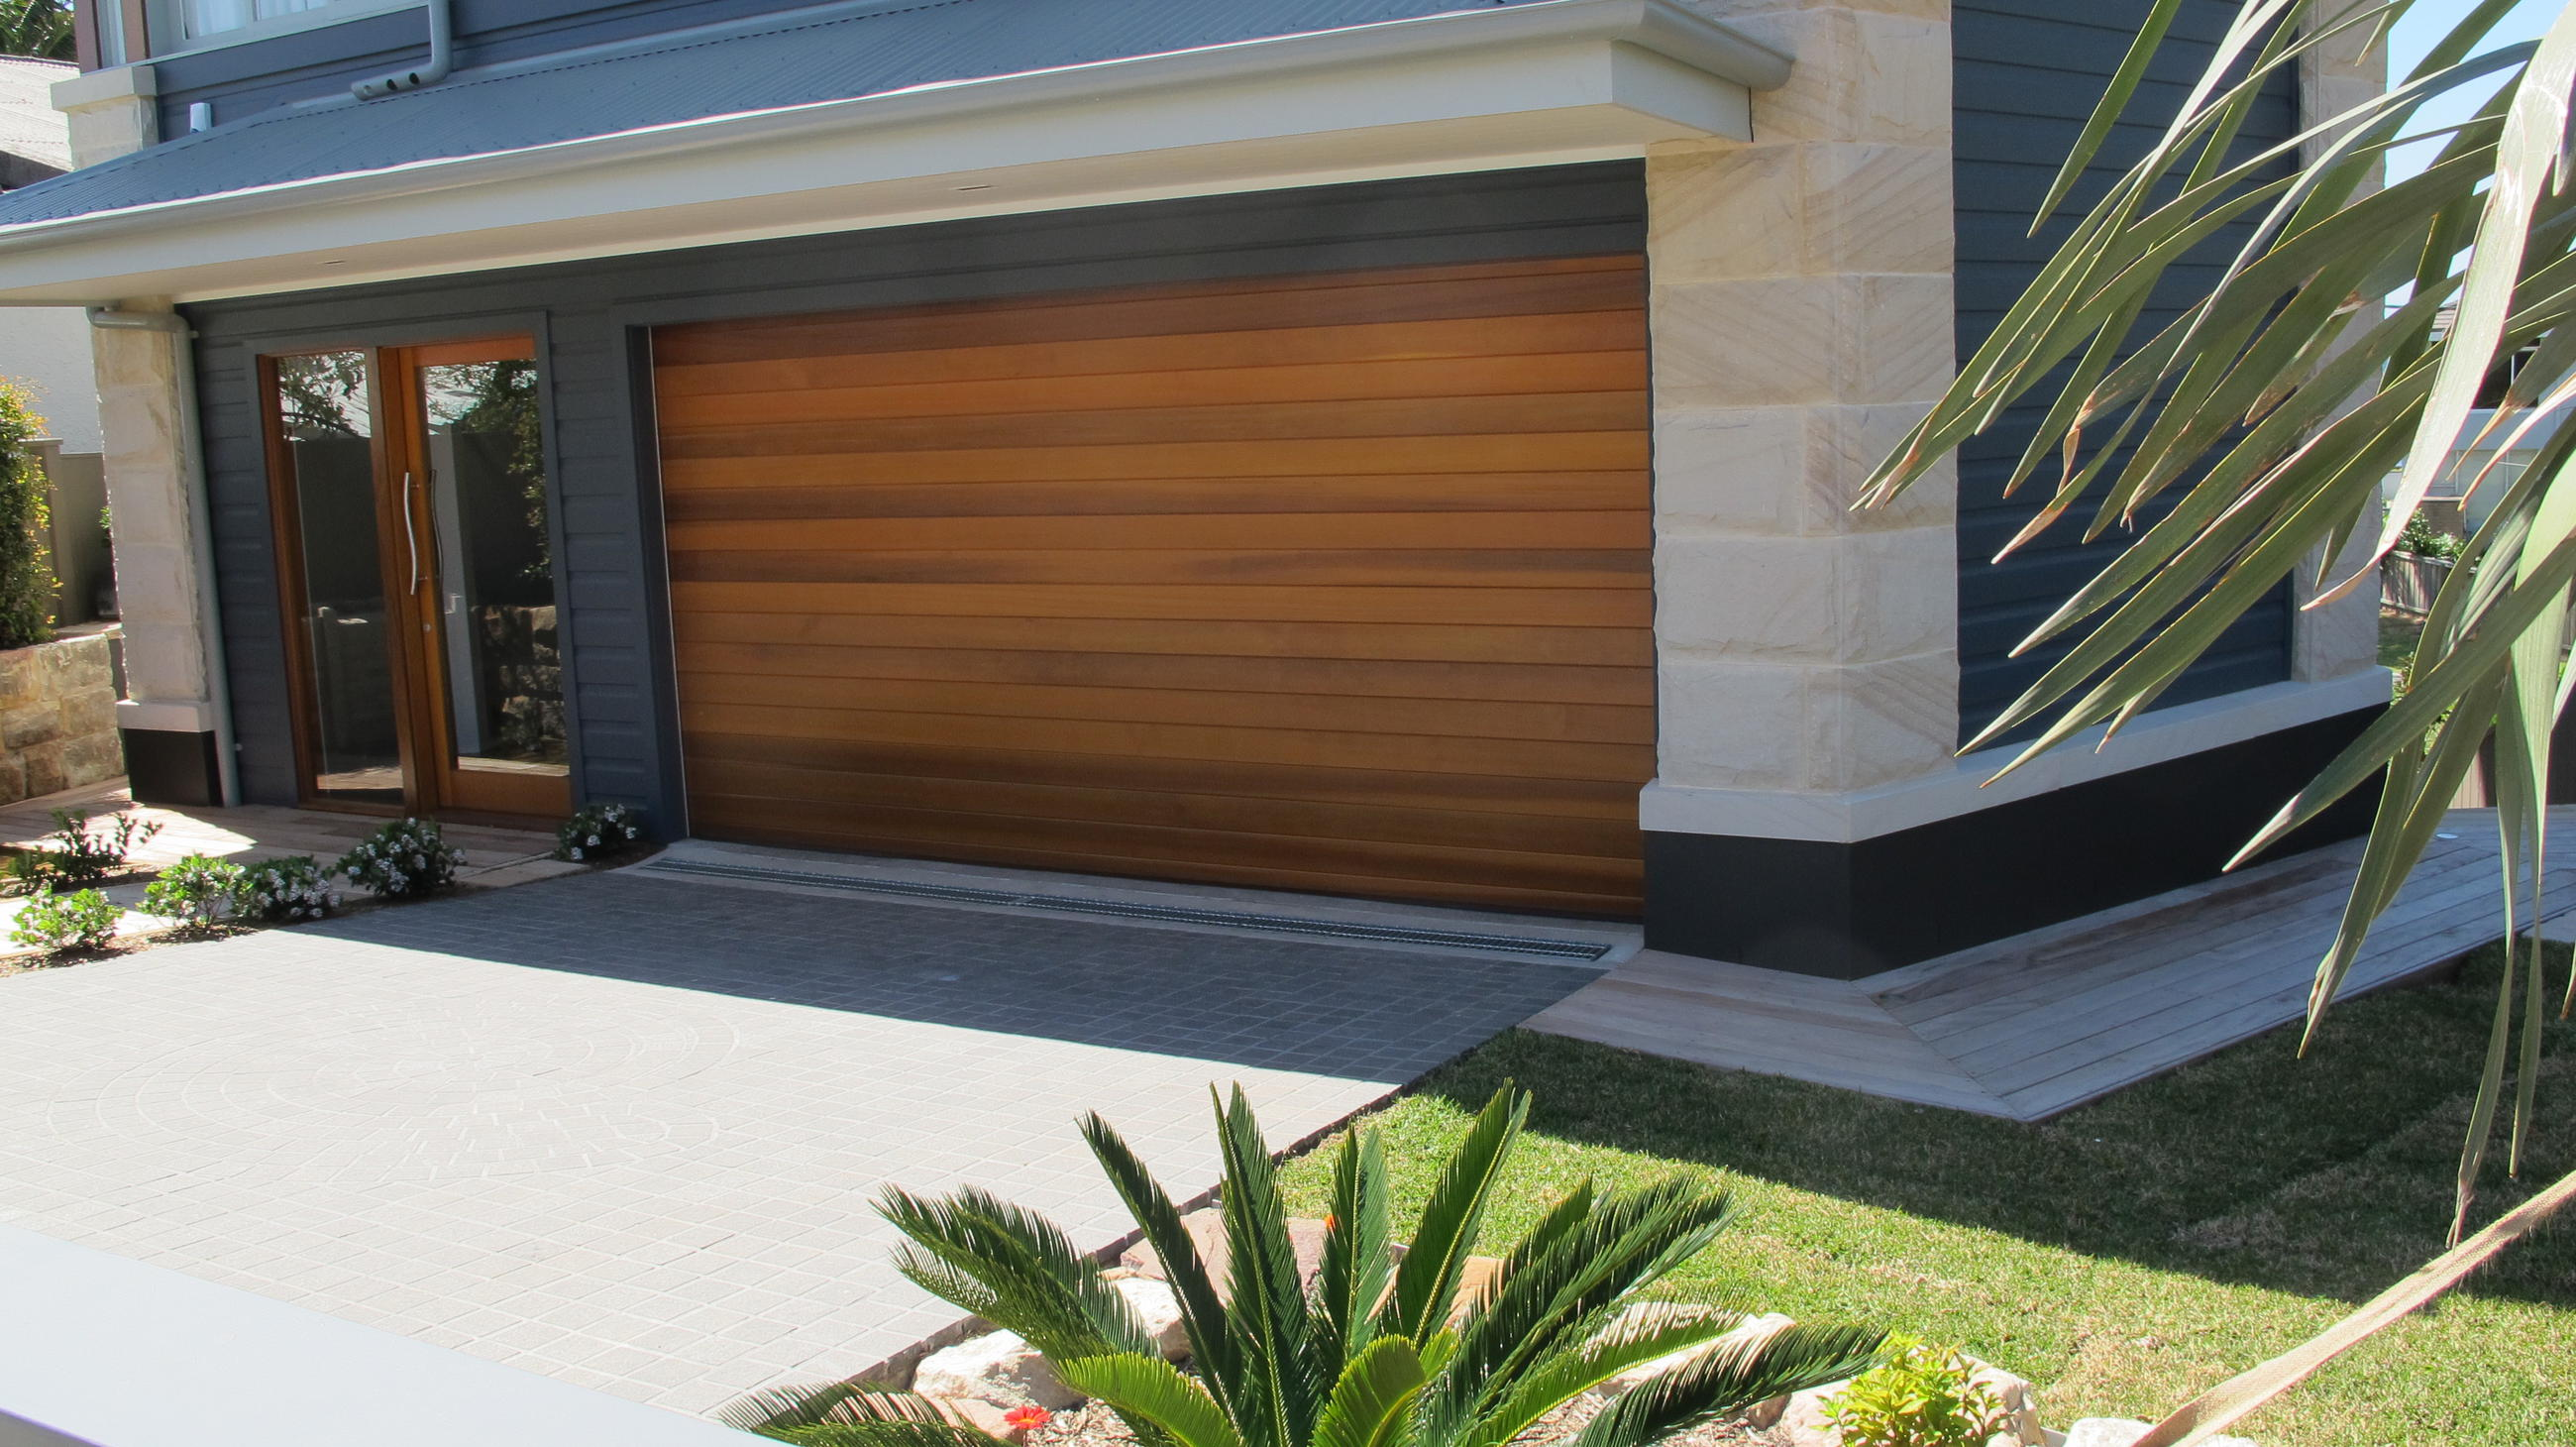 Western Red Cedar Garage Door Decor23